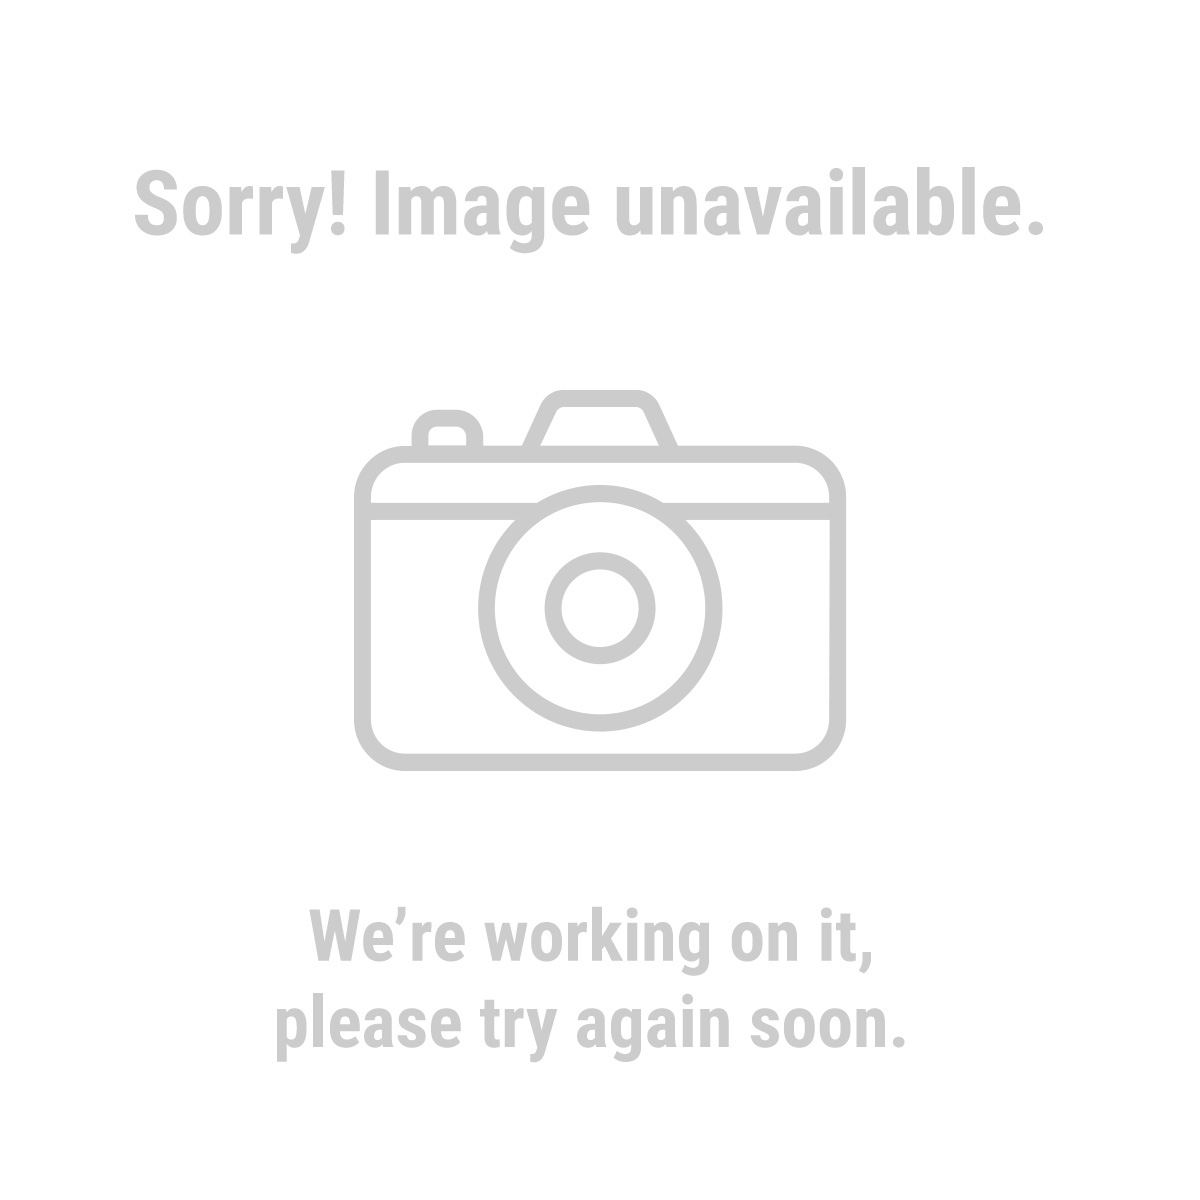 "Pittsburgh 33202 2 Piece 11"" 20° Offset & 45° Angle Long Reach Needle Plier Set"